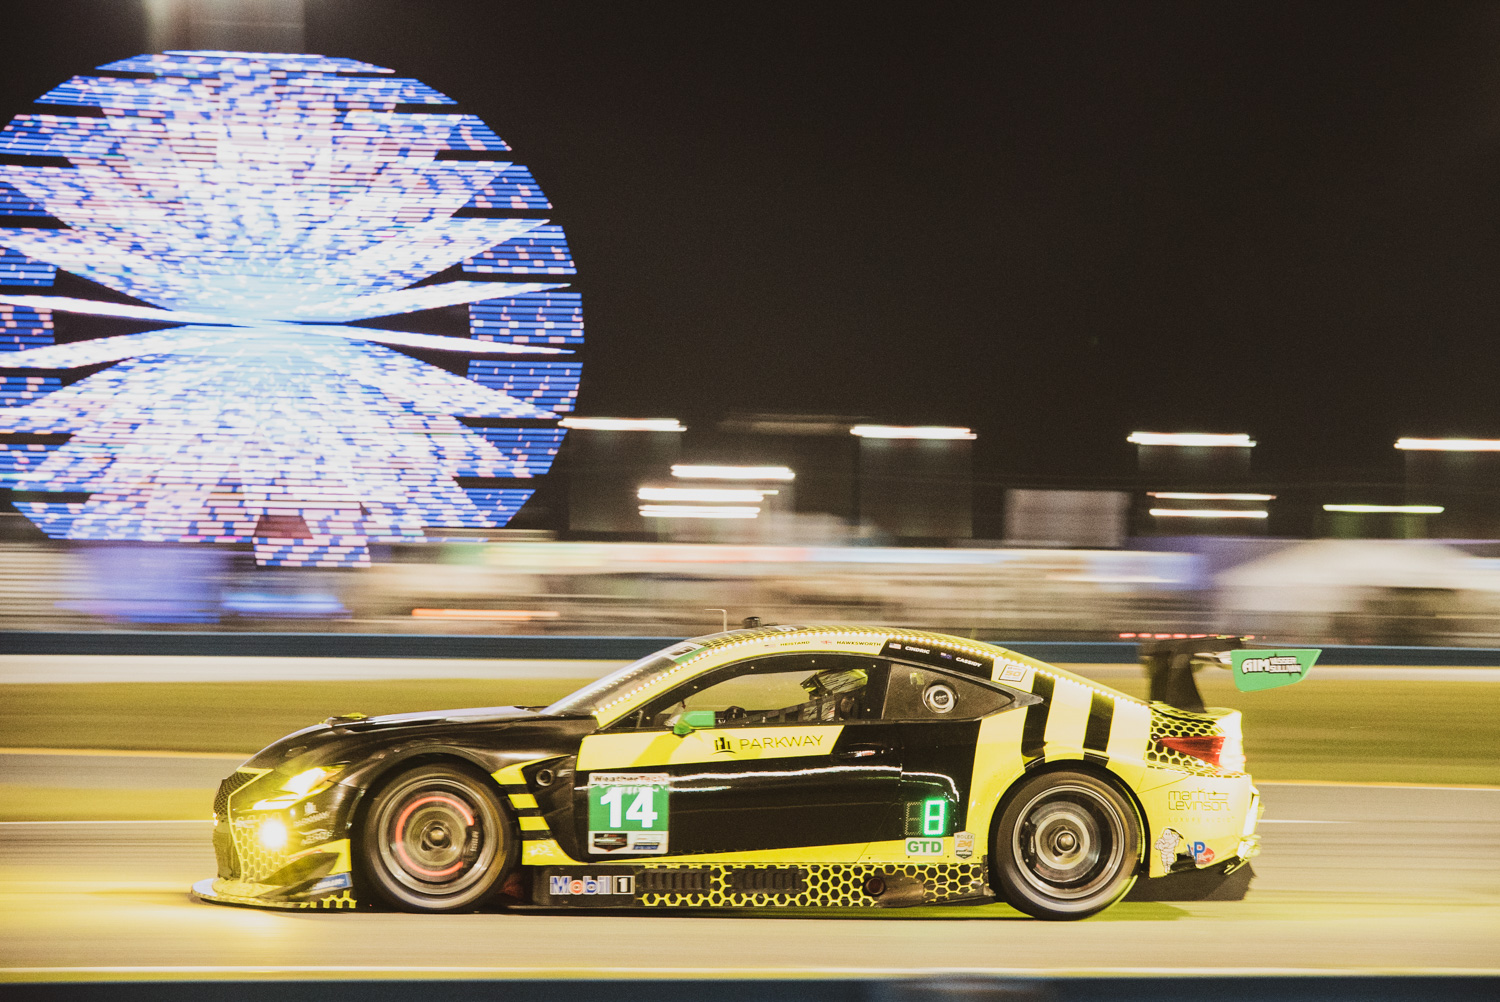 This Lexus RC F GT3 had a killer bee neon wrap that lit up the night.